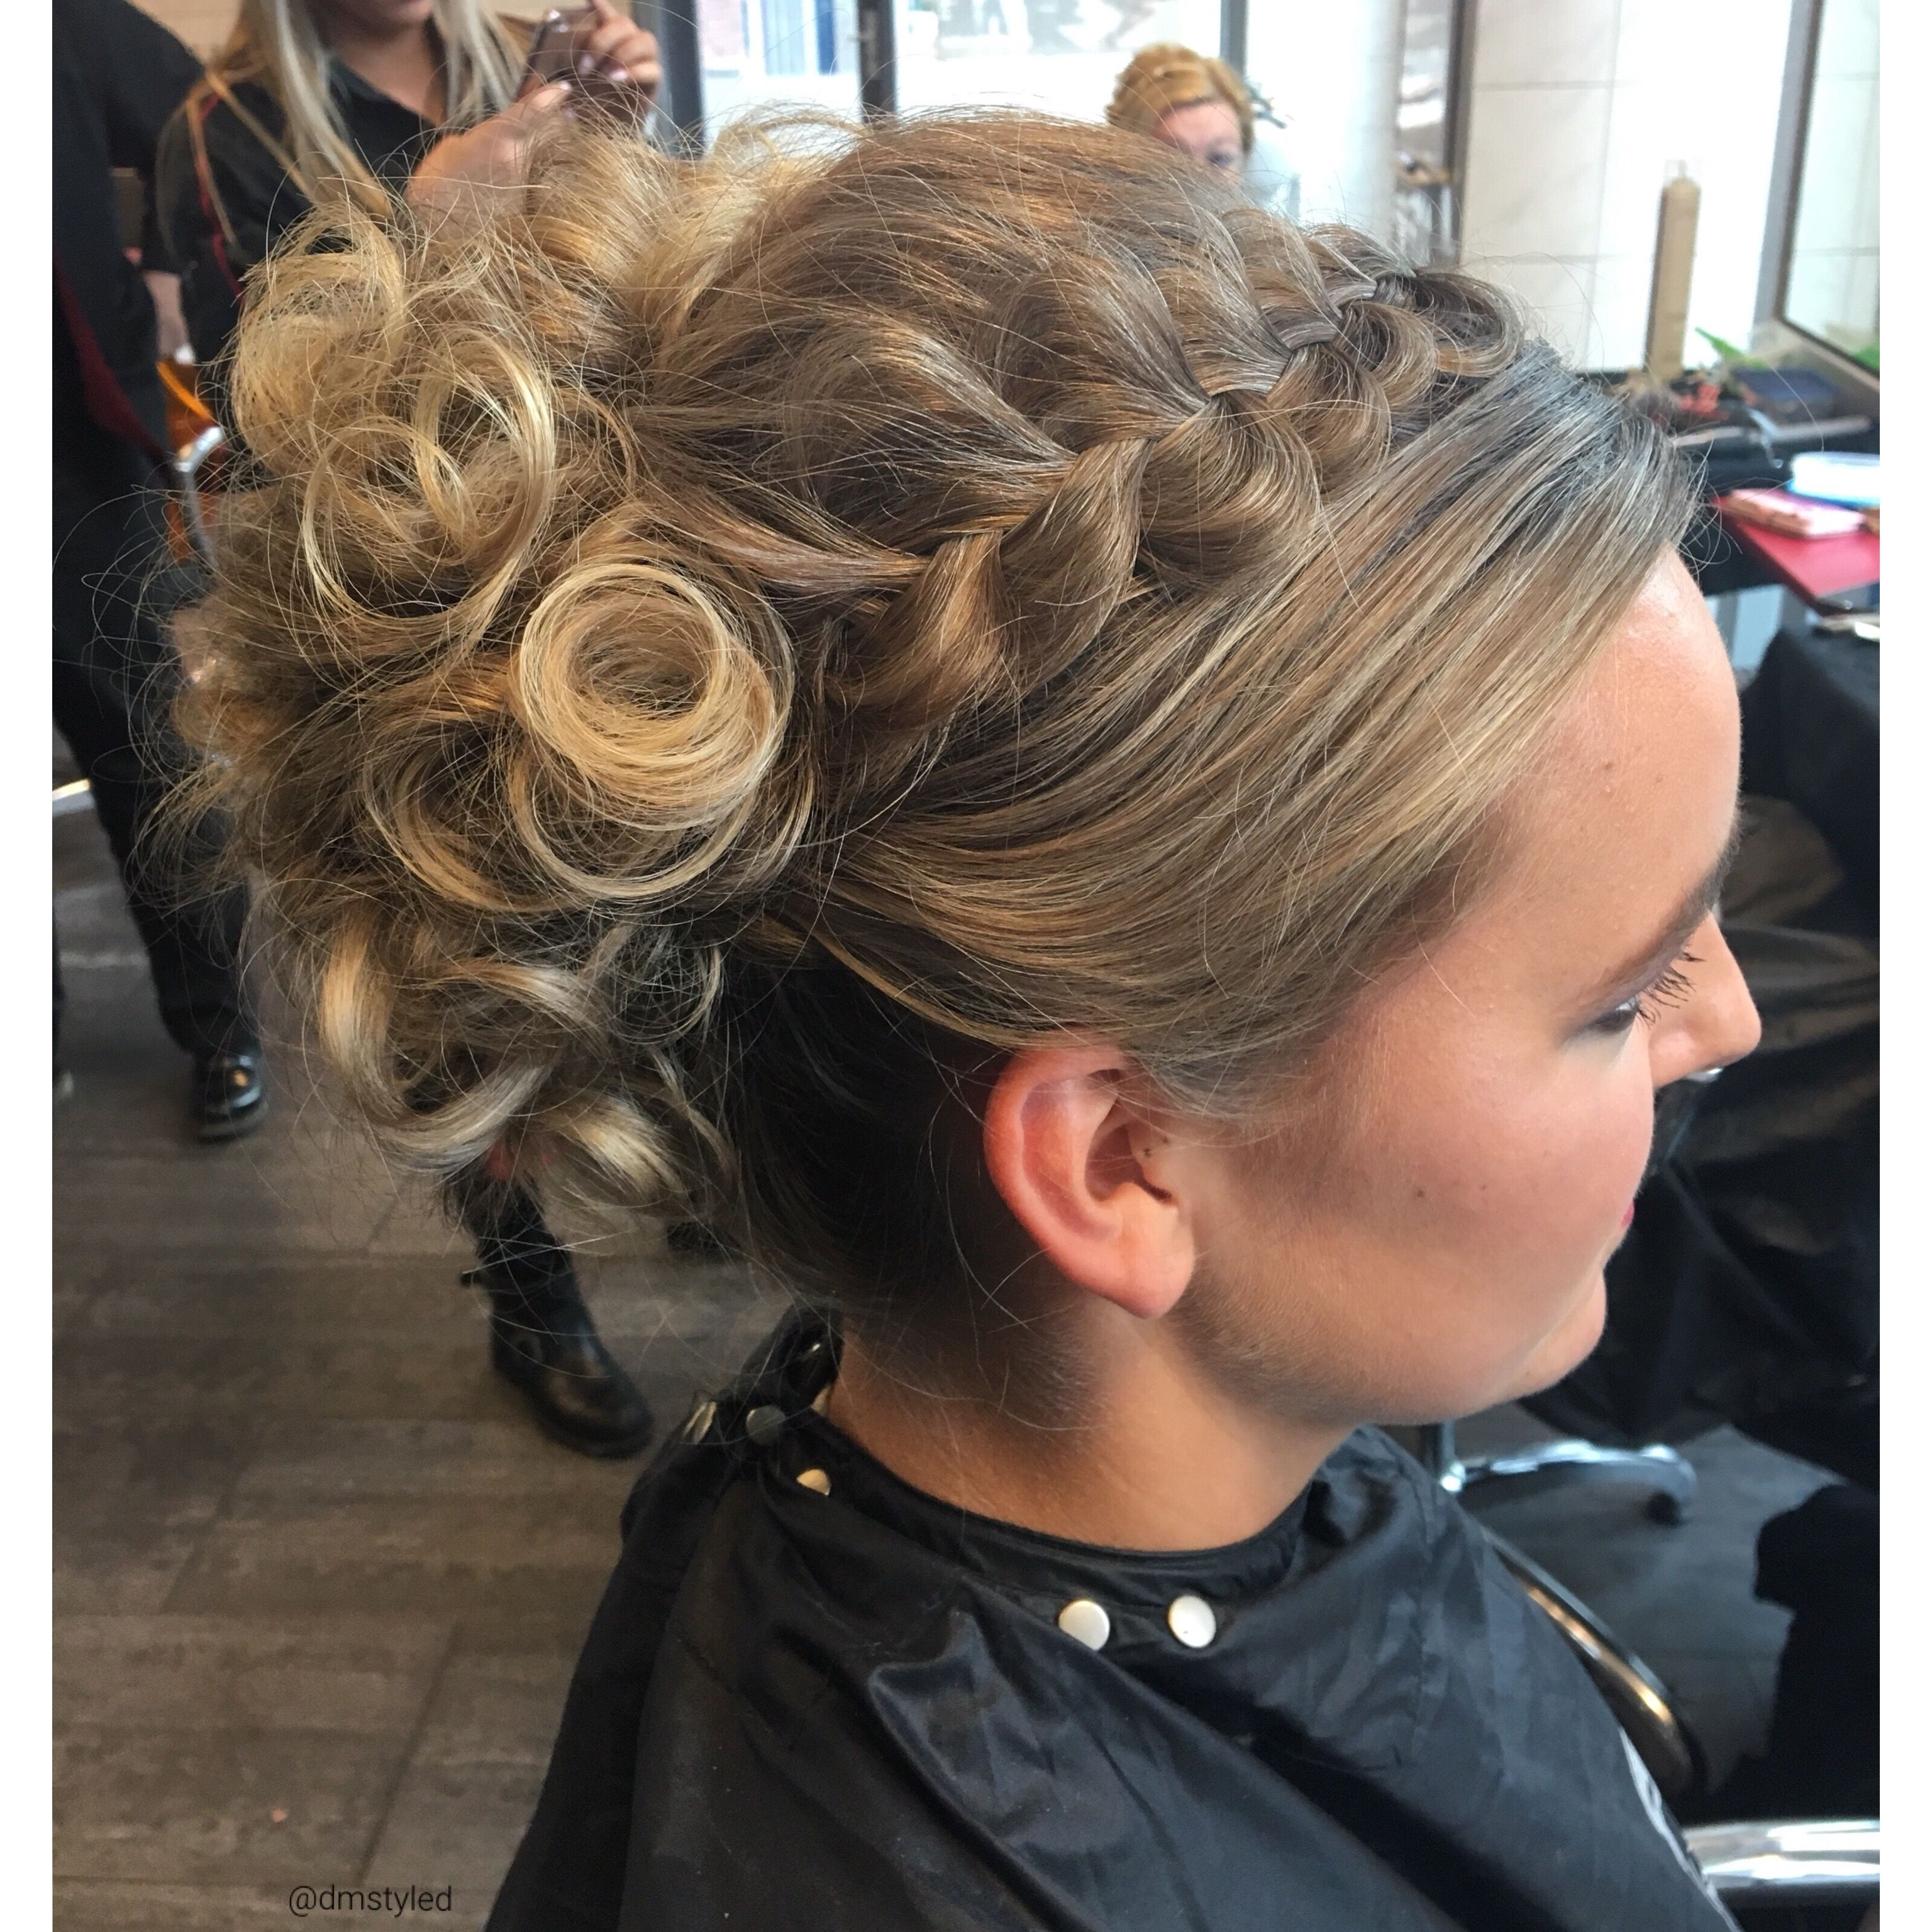 Updo with a braid hair styles pinterest updo and hair style